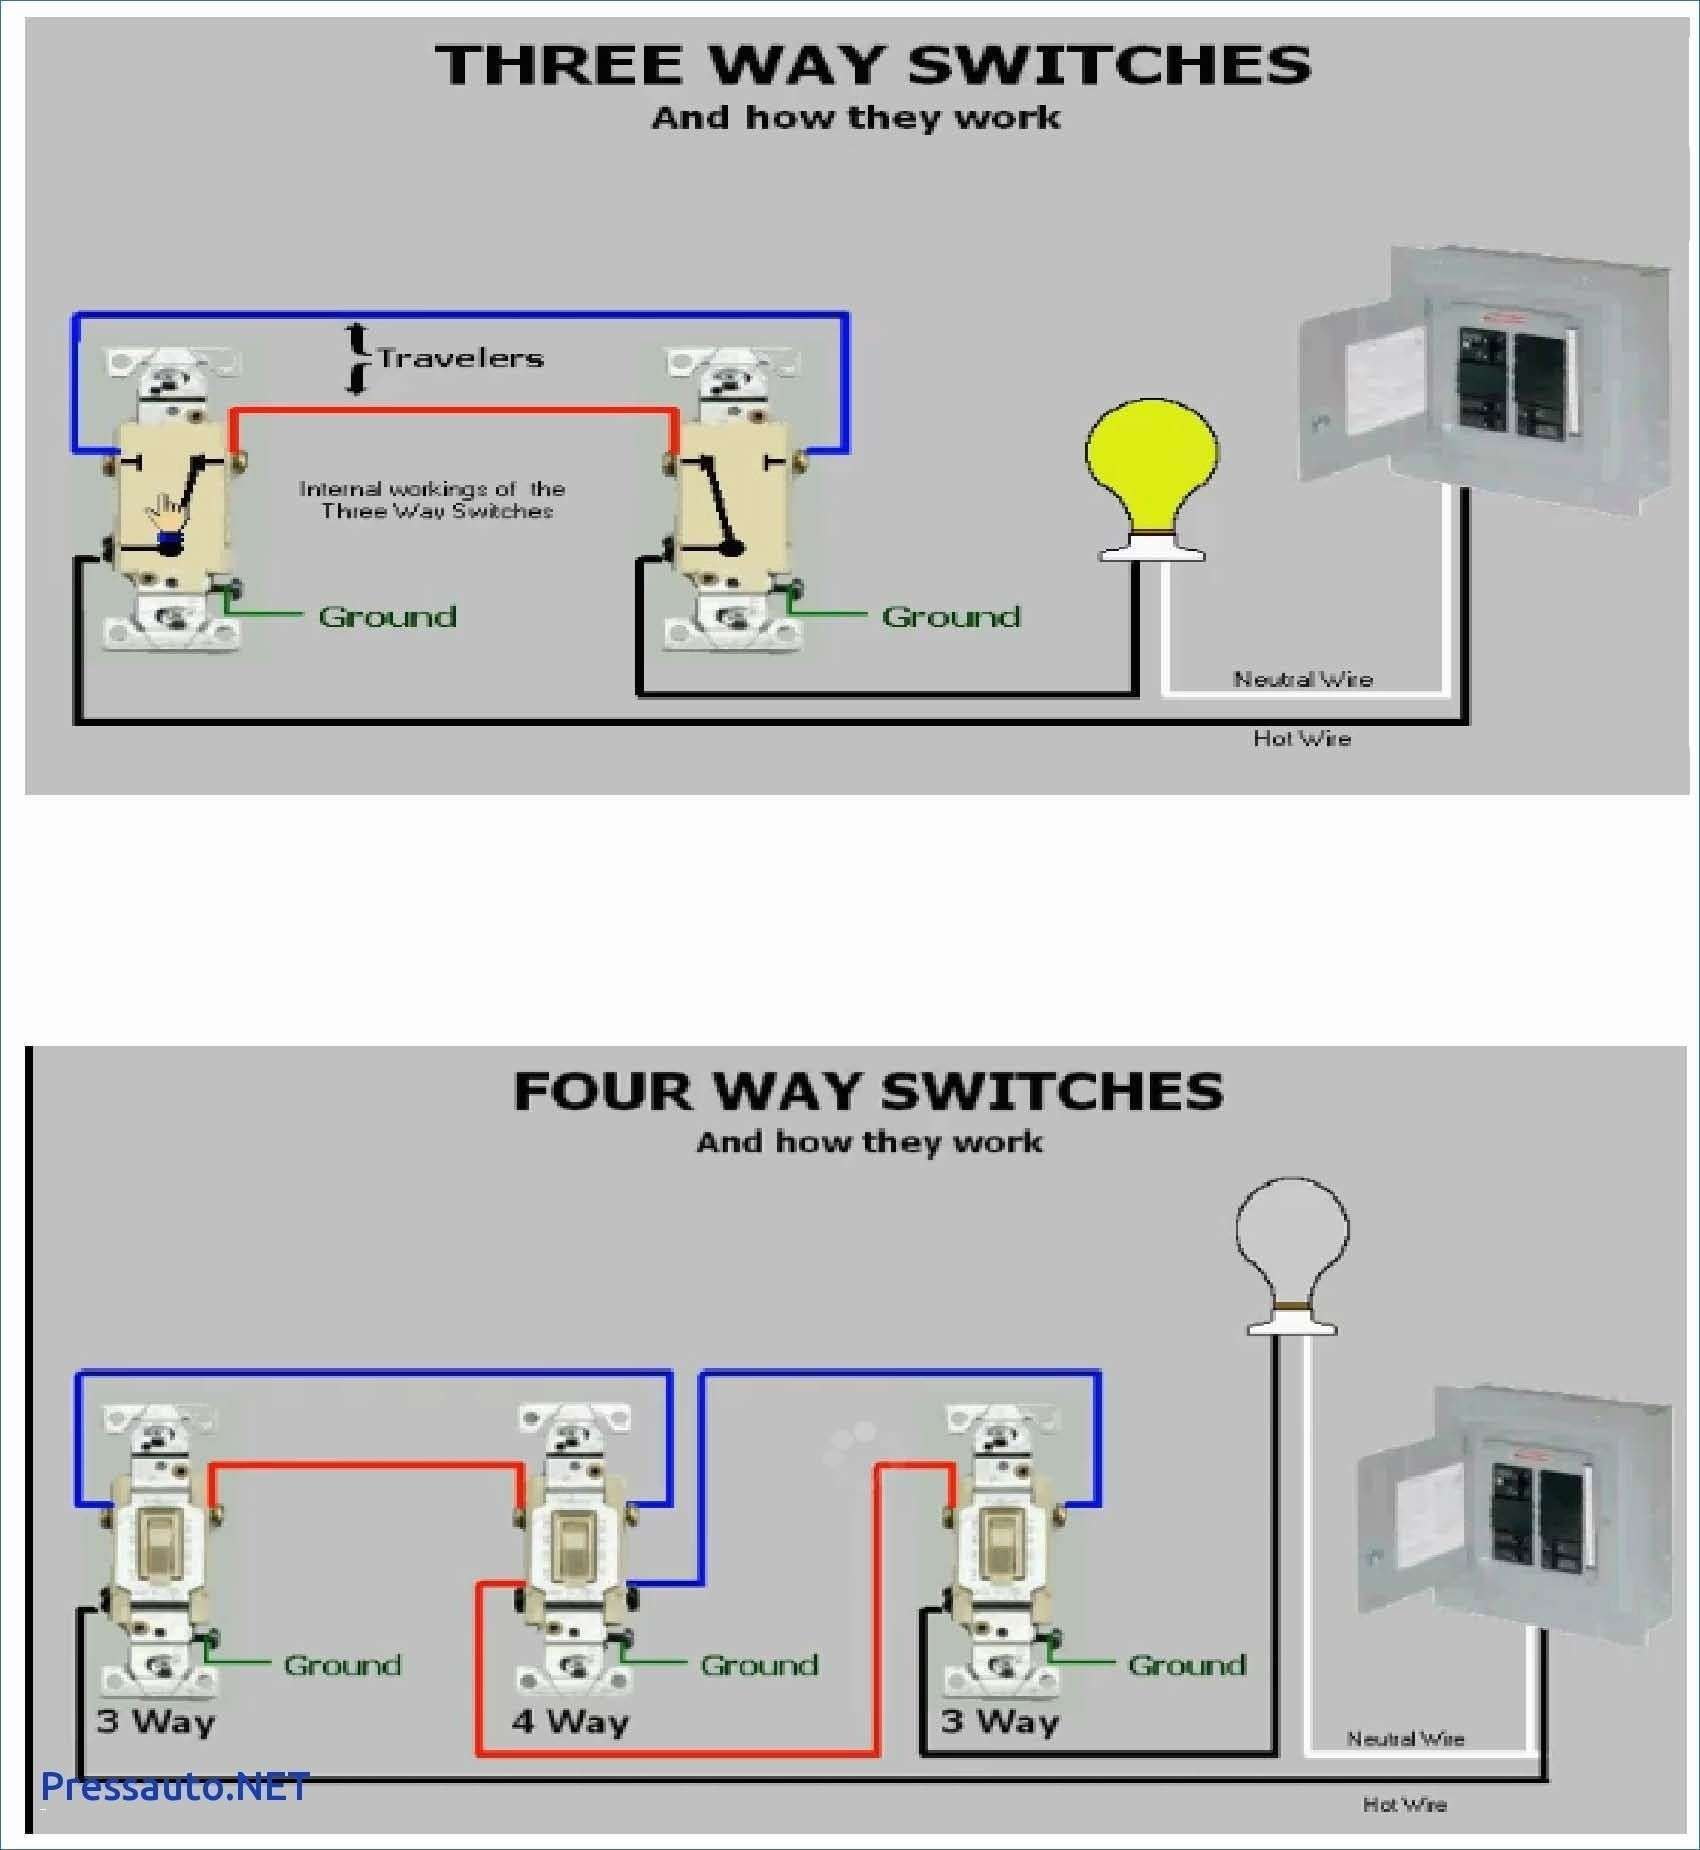 3 Way Smart Switches Wiring Diagram New Ge Z Wave 3 Way Switch Electrical Switch Wiring 3 Way Switch Wiring Three Way Switch